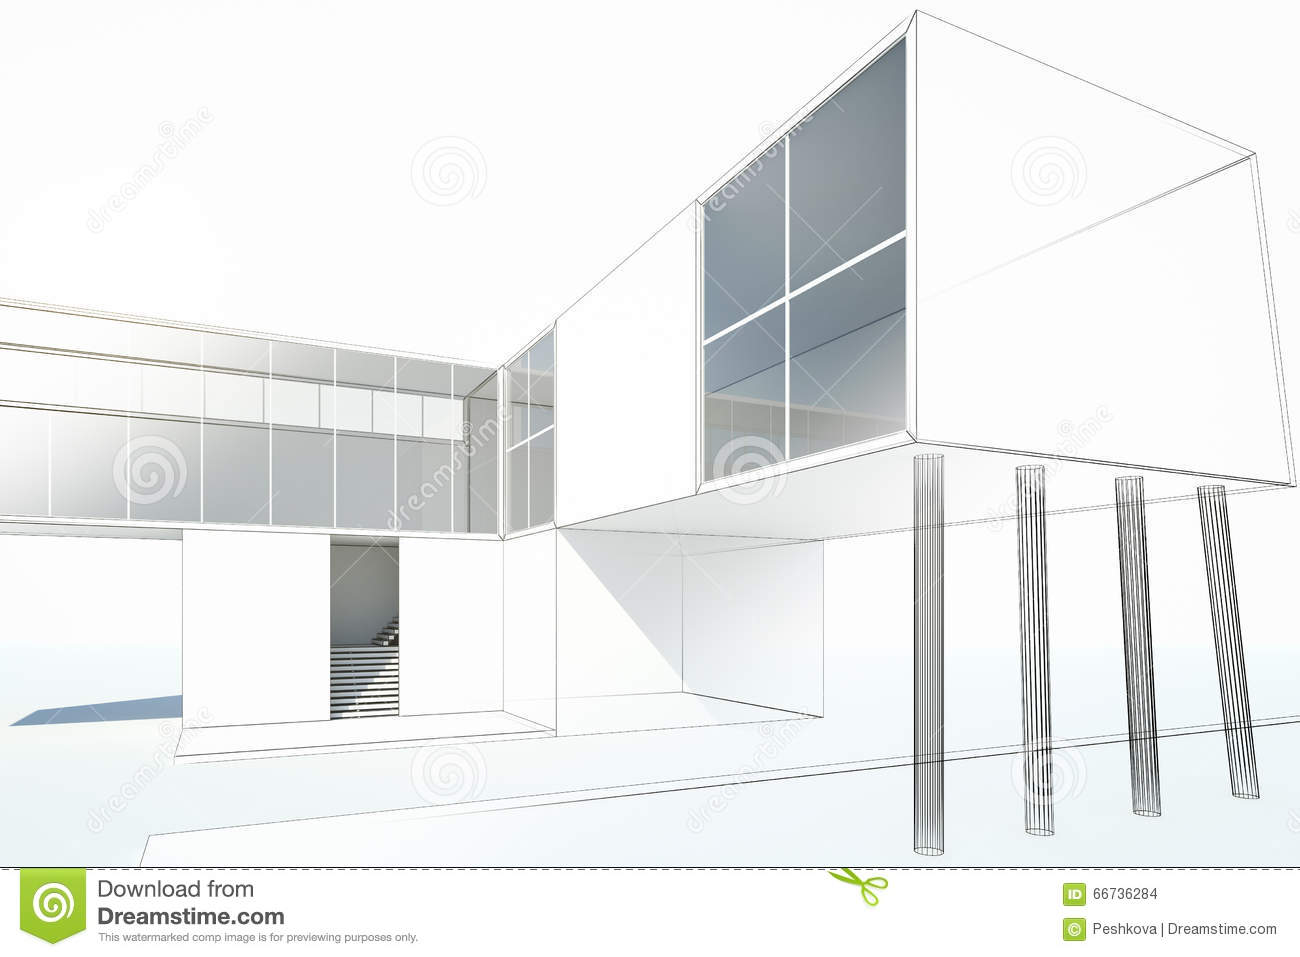 Maison moderne de dessin photo stock. Image du affaires - 26209994